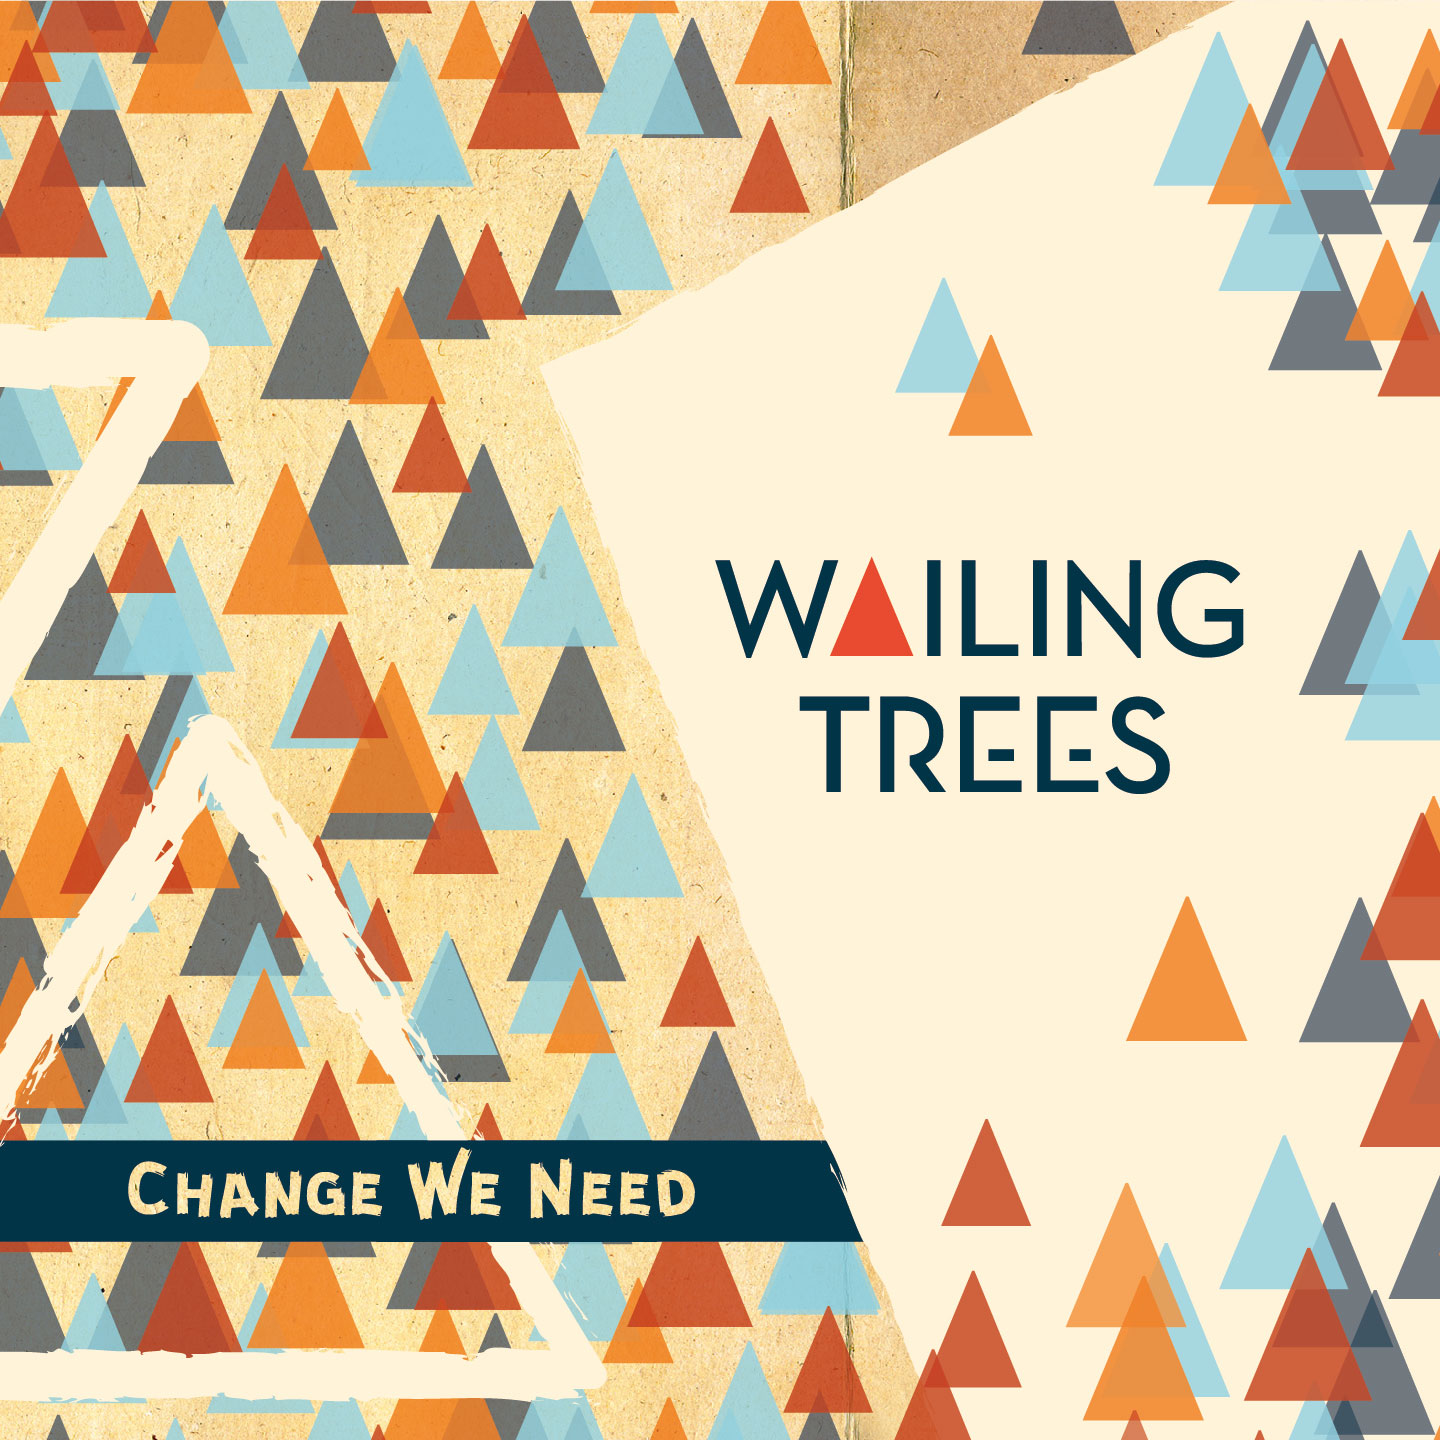 Wailing Trees - Change we need